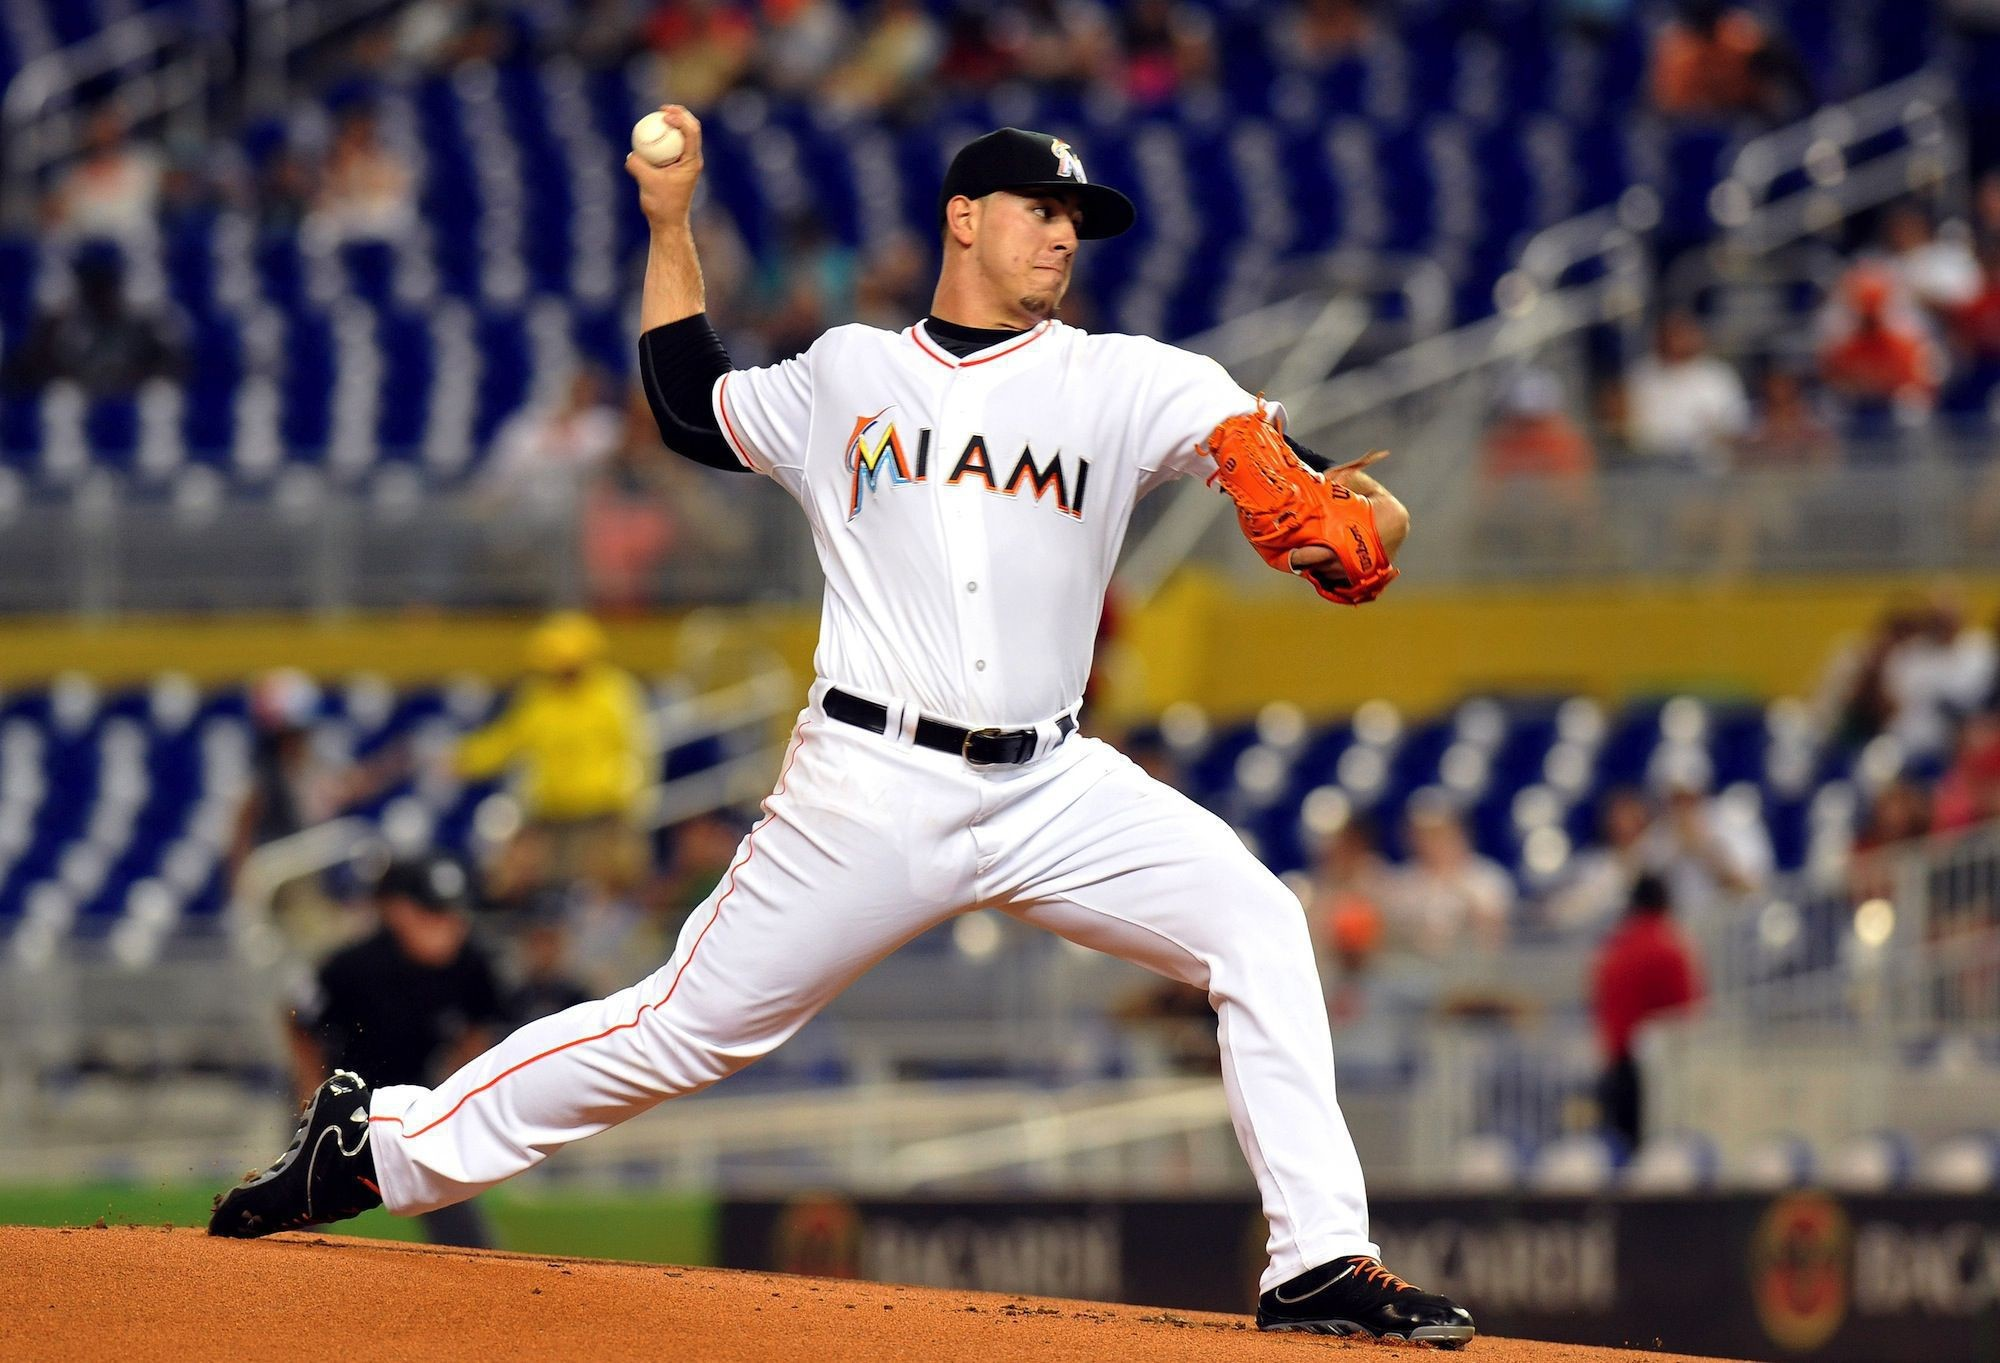 Miami Marlins High Quality Wallpapers